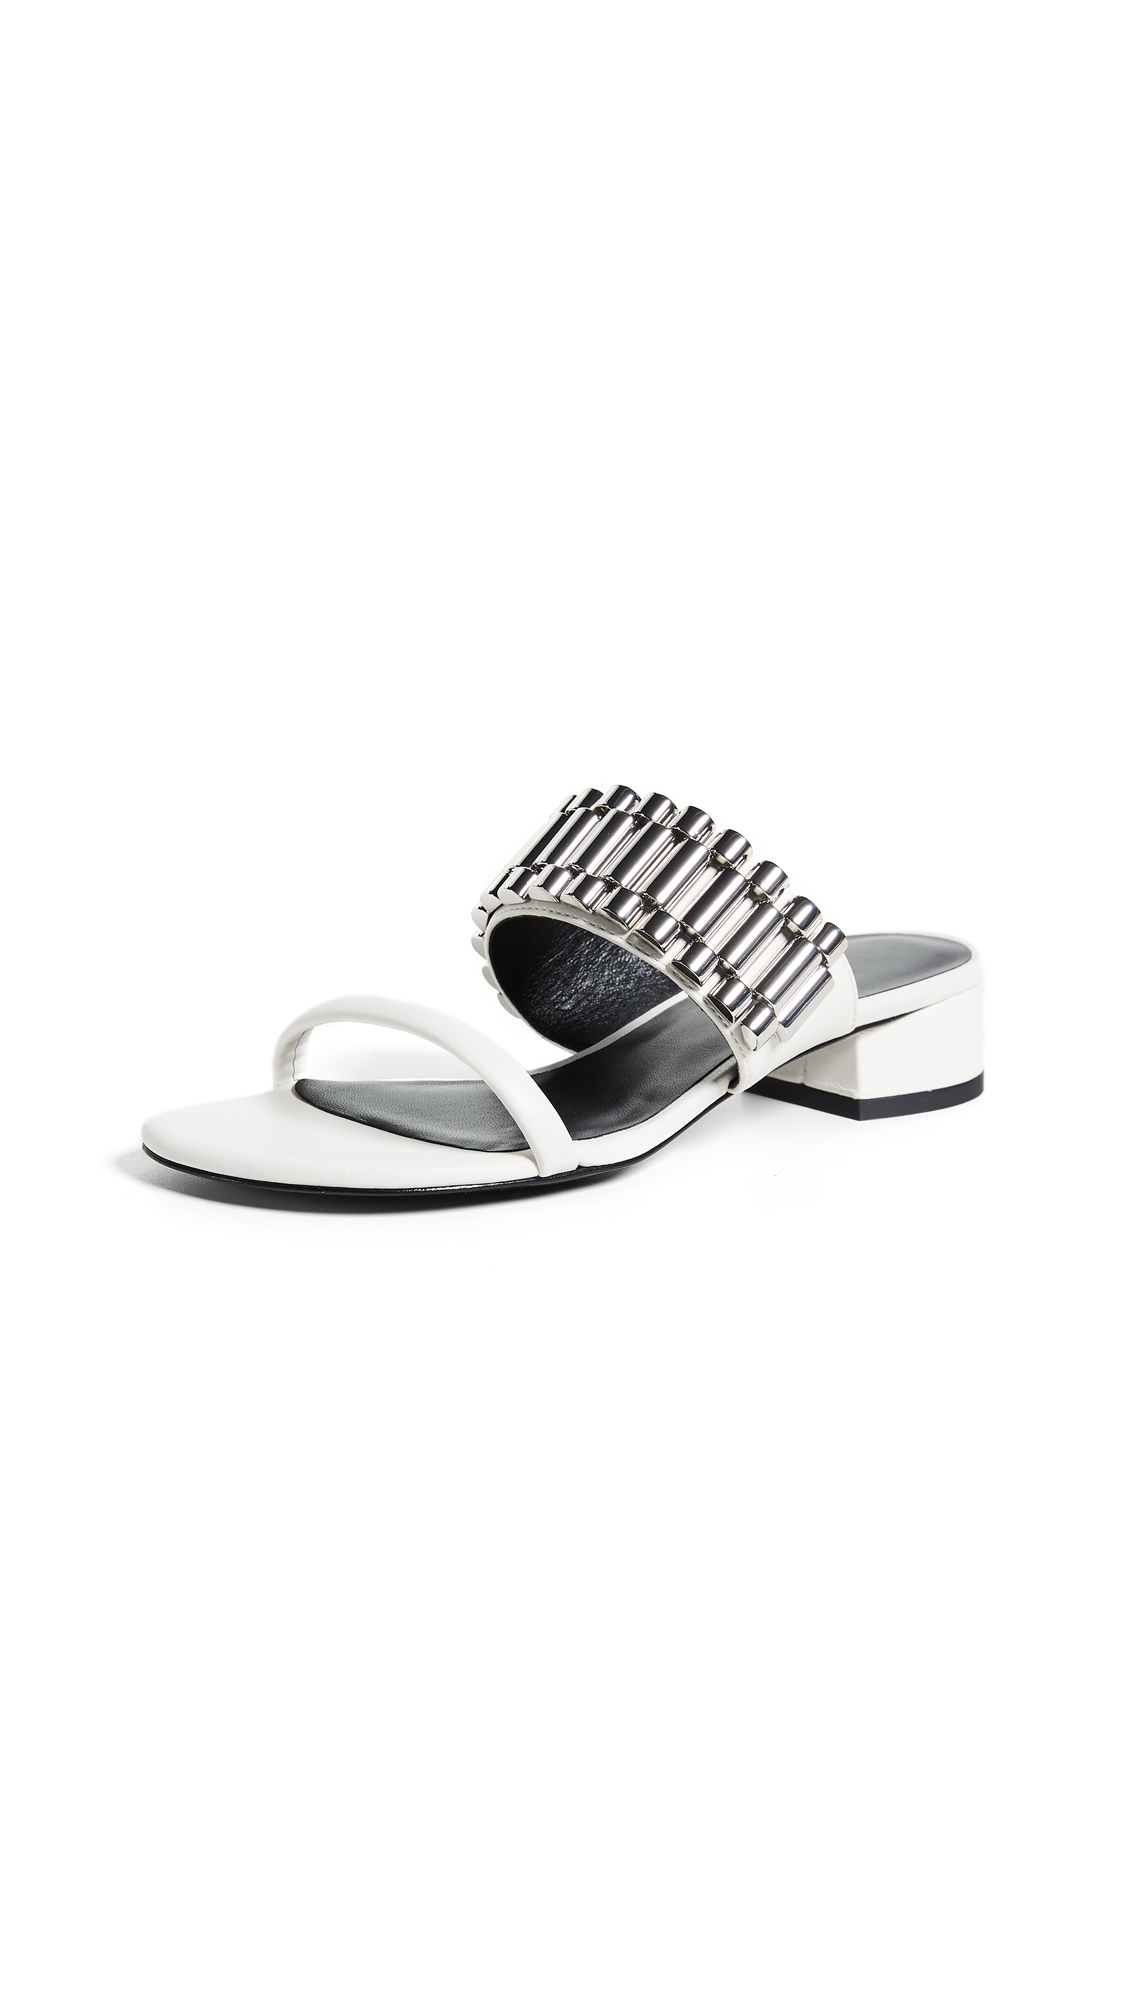 3.1 Phillip Lim Drum 30mm Watch Strap Sandals - White